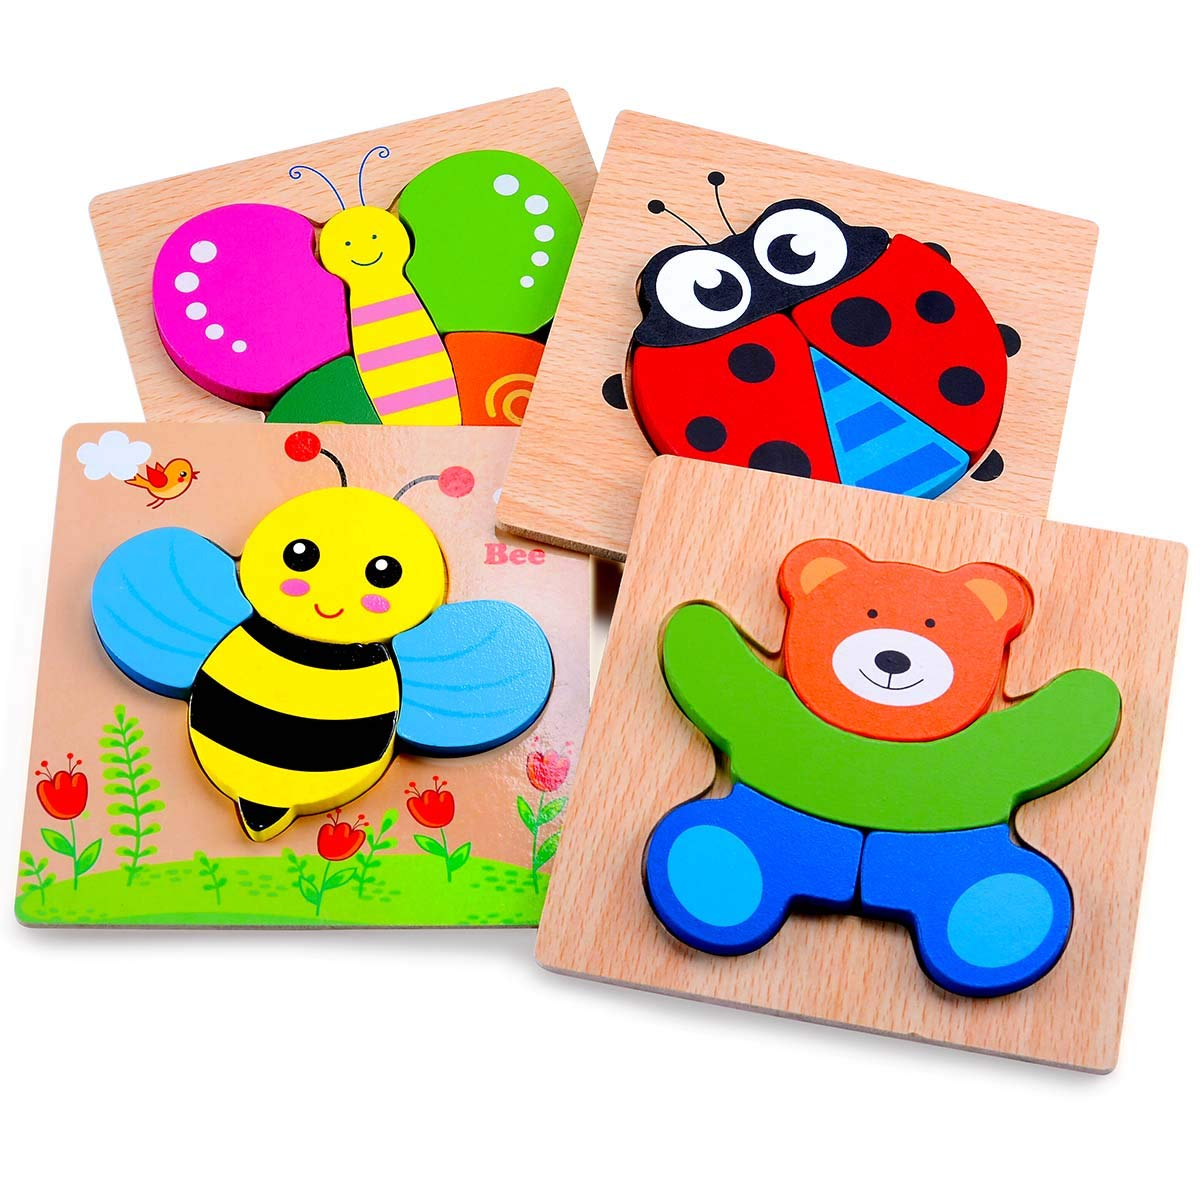 MAGIFIRE Wooden Animal Jigsaw Puzzles for Toddlers 1 2 3 Years Old,Boys&Girls Educational Toys Gift with 4 Animals Patterns,Bright Vibrant Color Shapes by MAGIFIRE